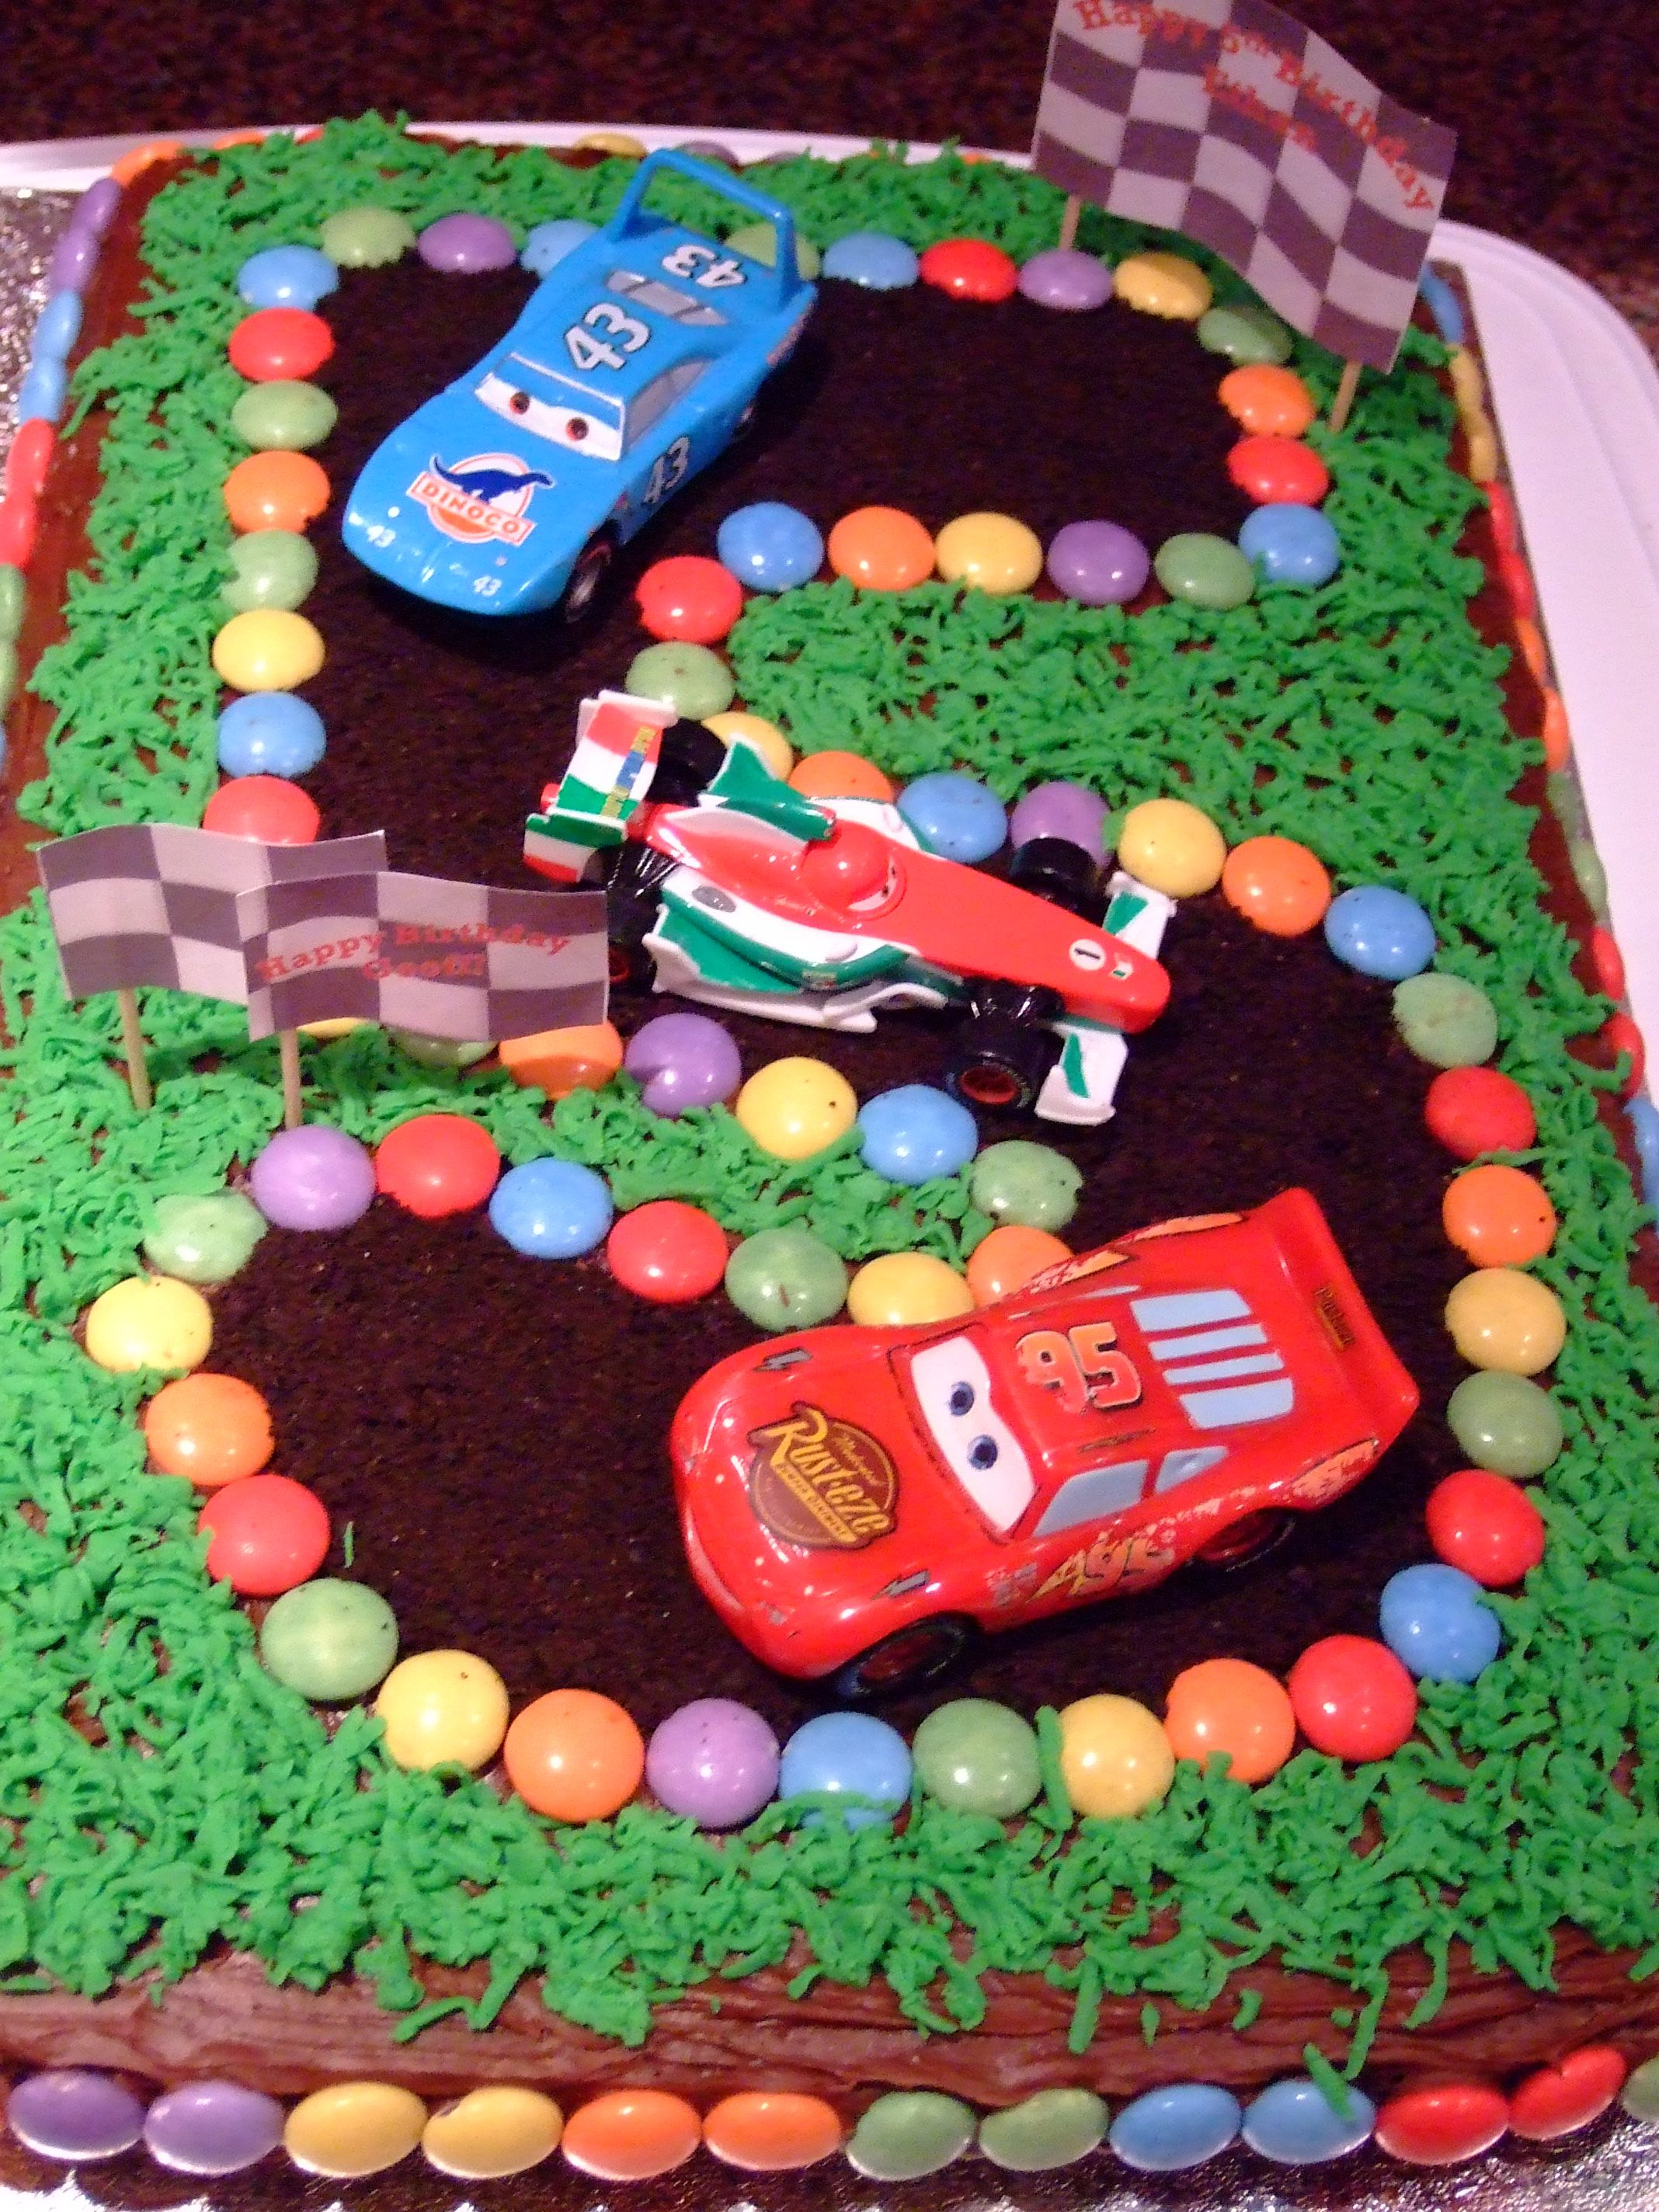 Disney Cars Th Birthday Cake Kid Theme Parties Games Food - Cake birthday games